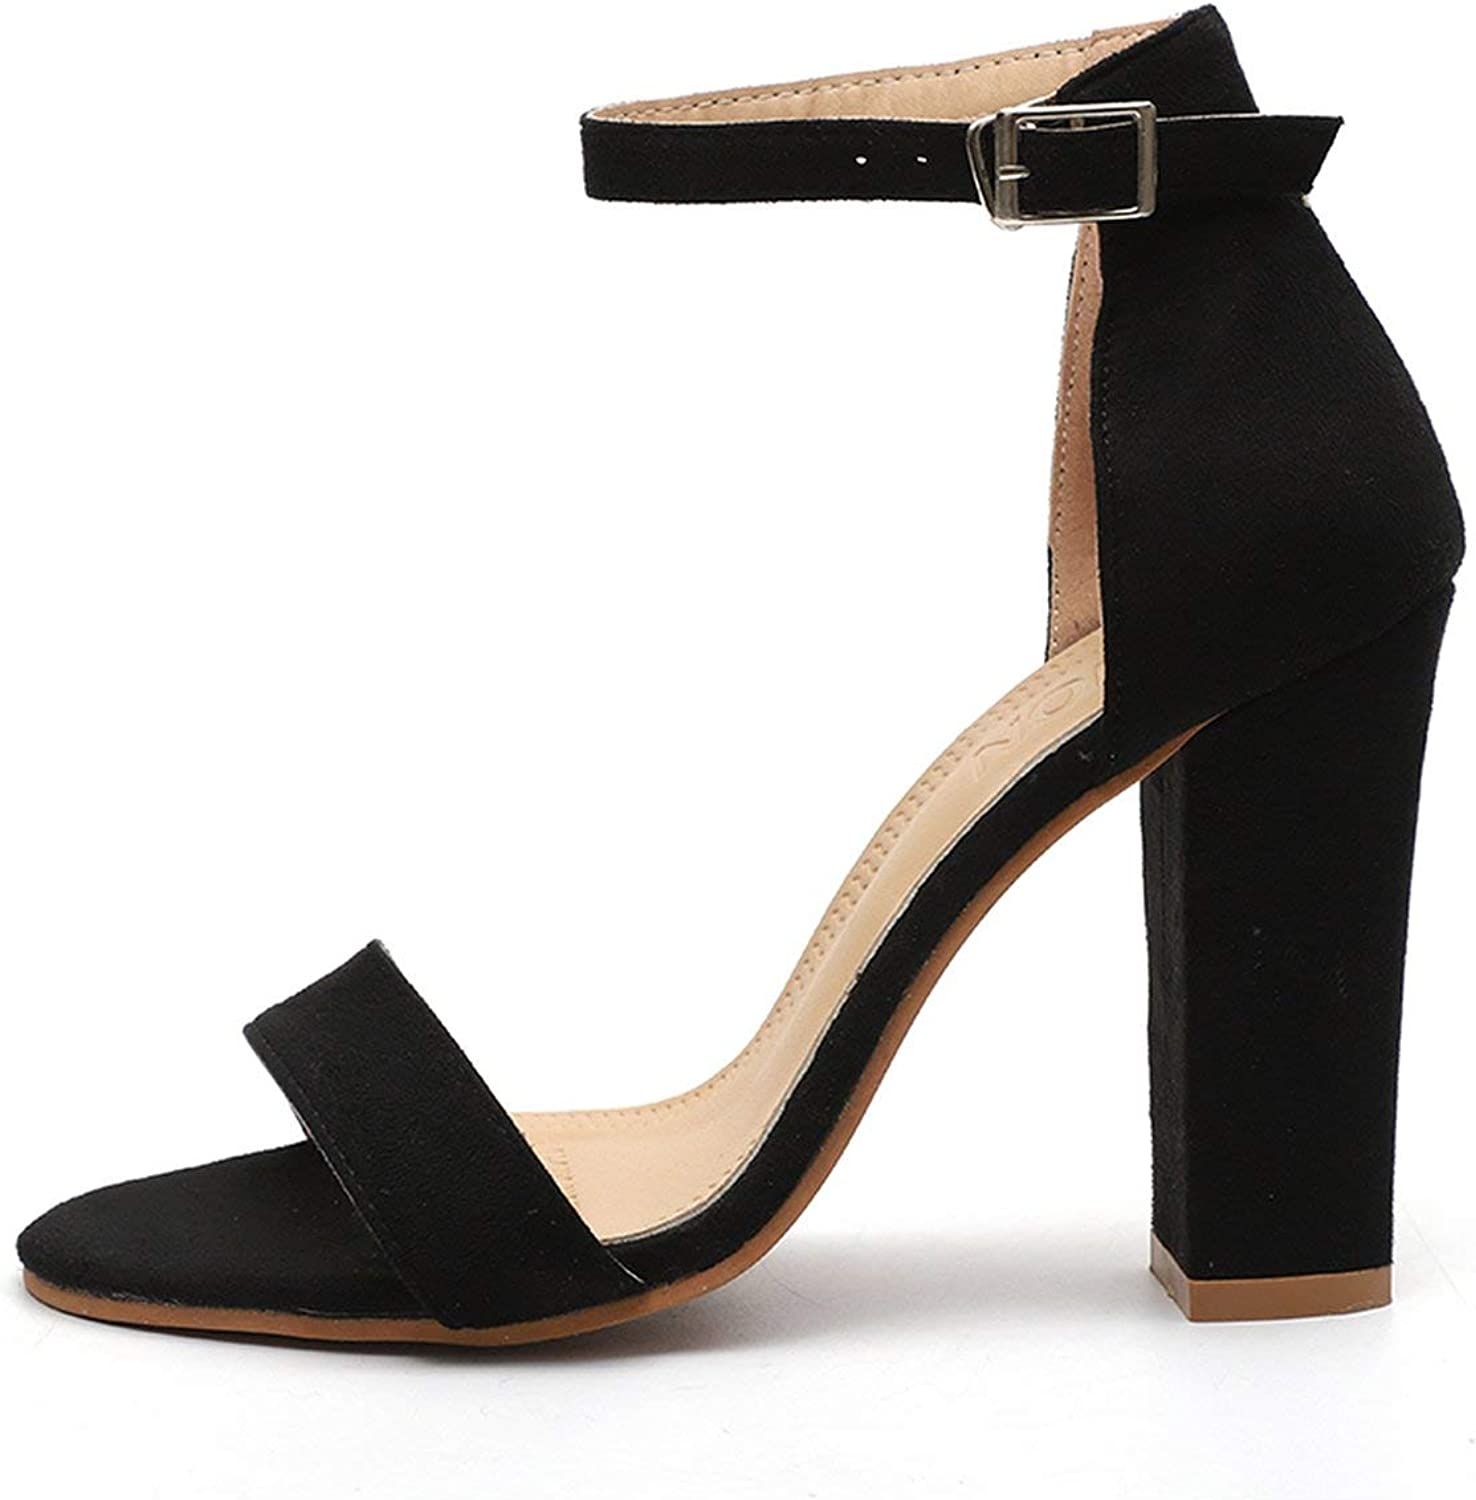 HANBINGPO 2019 Summer Women Flock Square Heel Sandals High Heels Buckle Strap Female Fashion Dress Woman Sandal shoes for Girls Plus Size,Black,6